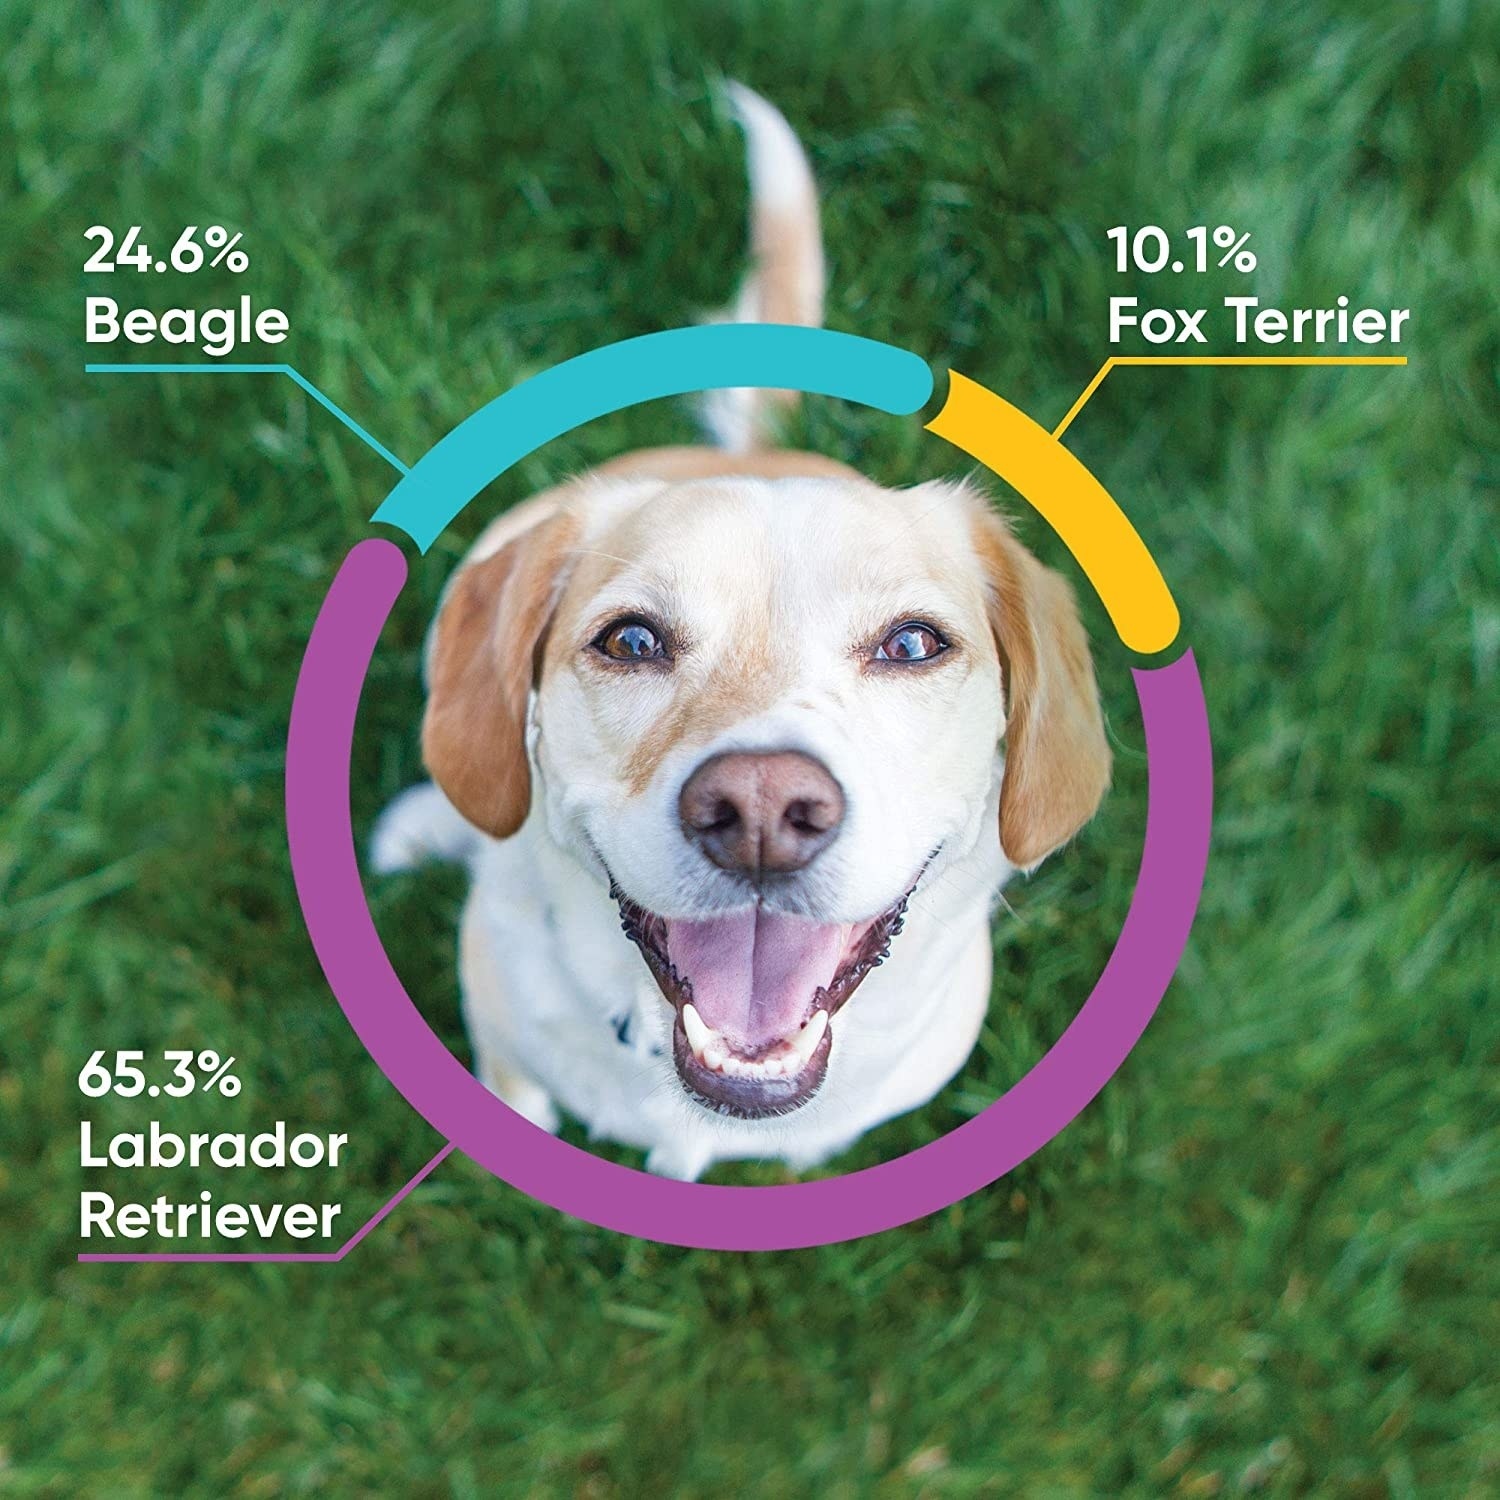 An example breakdown of breeds: 24.6% beagle, 10.1% fox terrier, and 65.3% labrador retriever